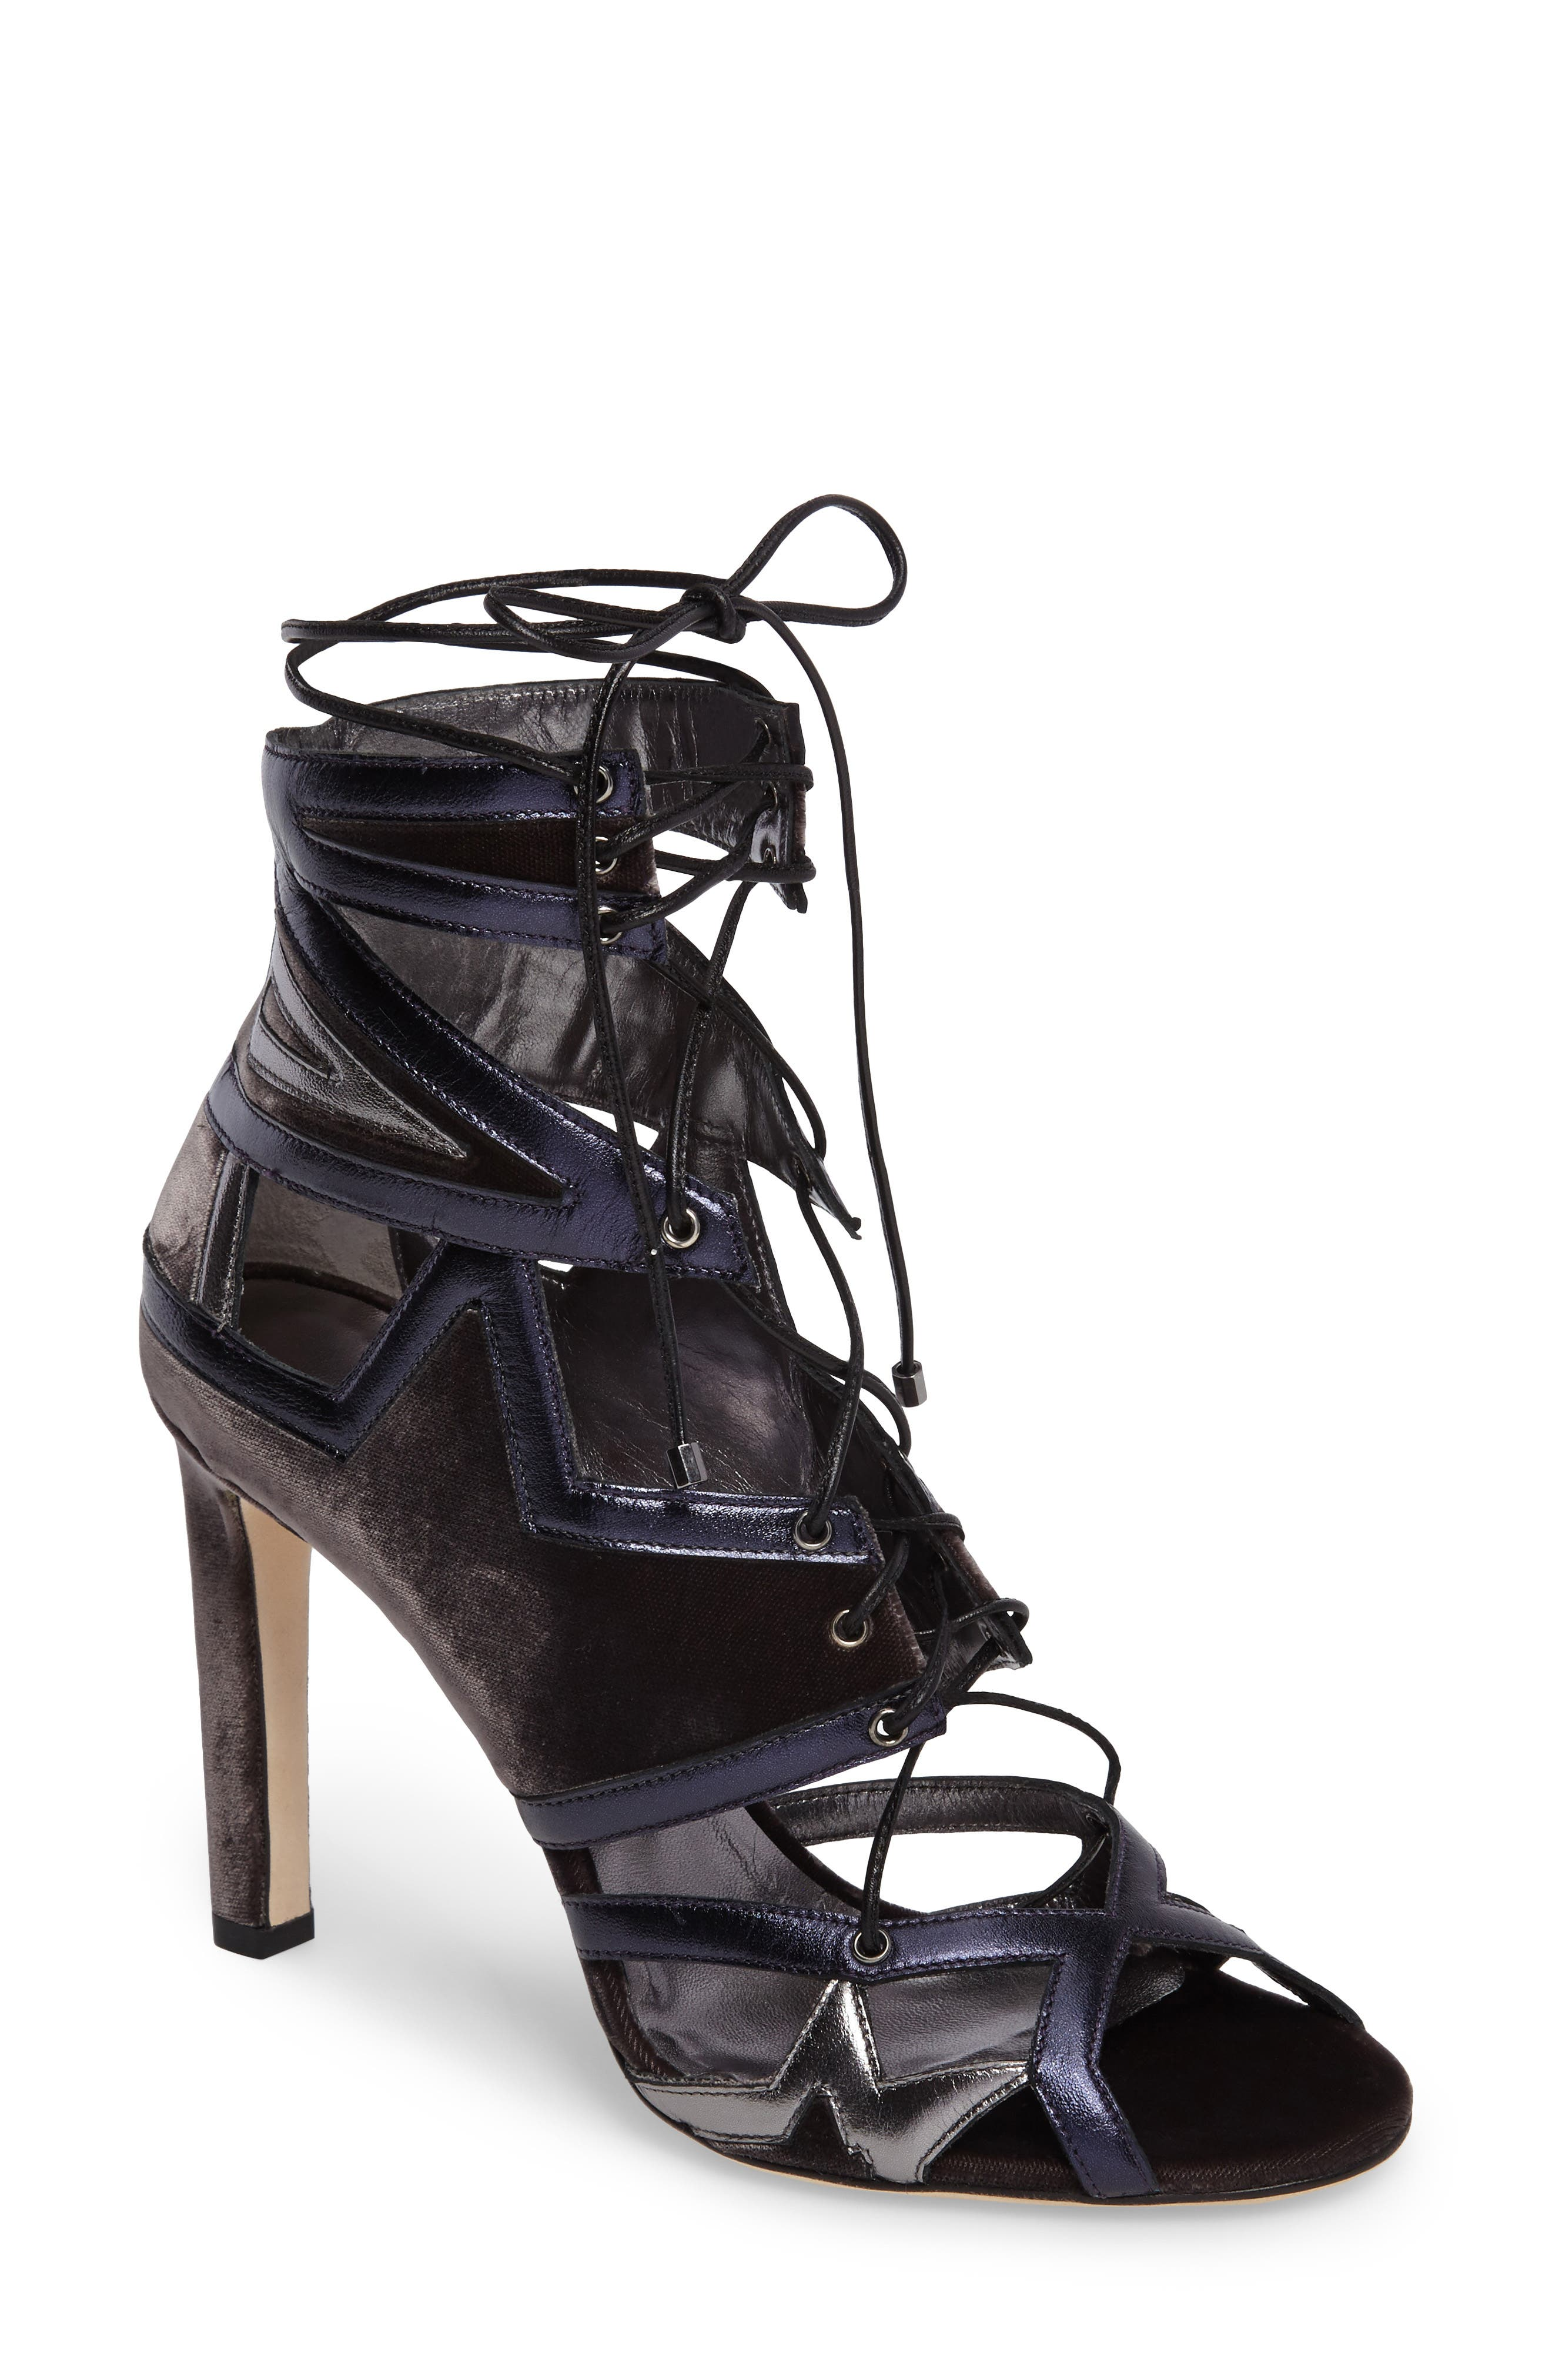 Alternate Image 1 Selected - Jimmy Choo Denney Lace-Up Sandal (Women)